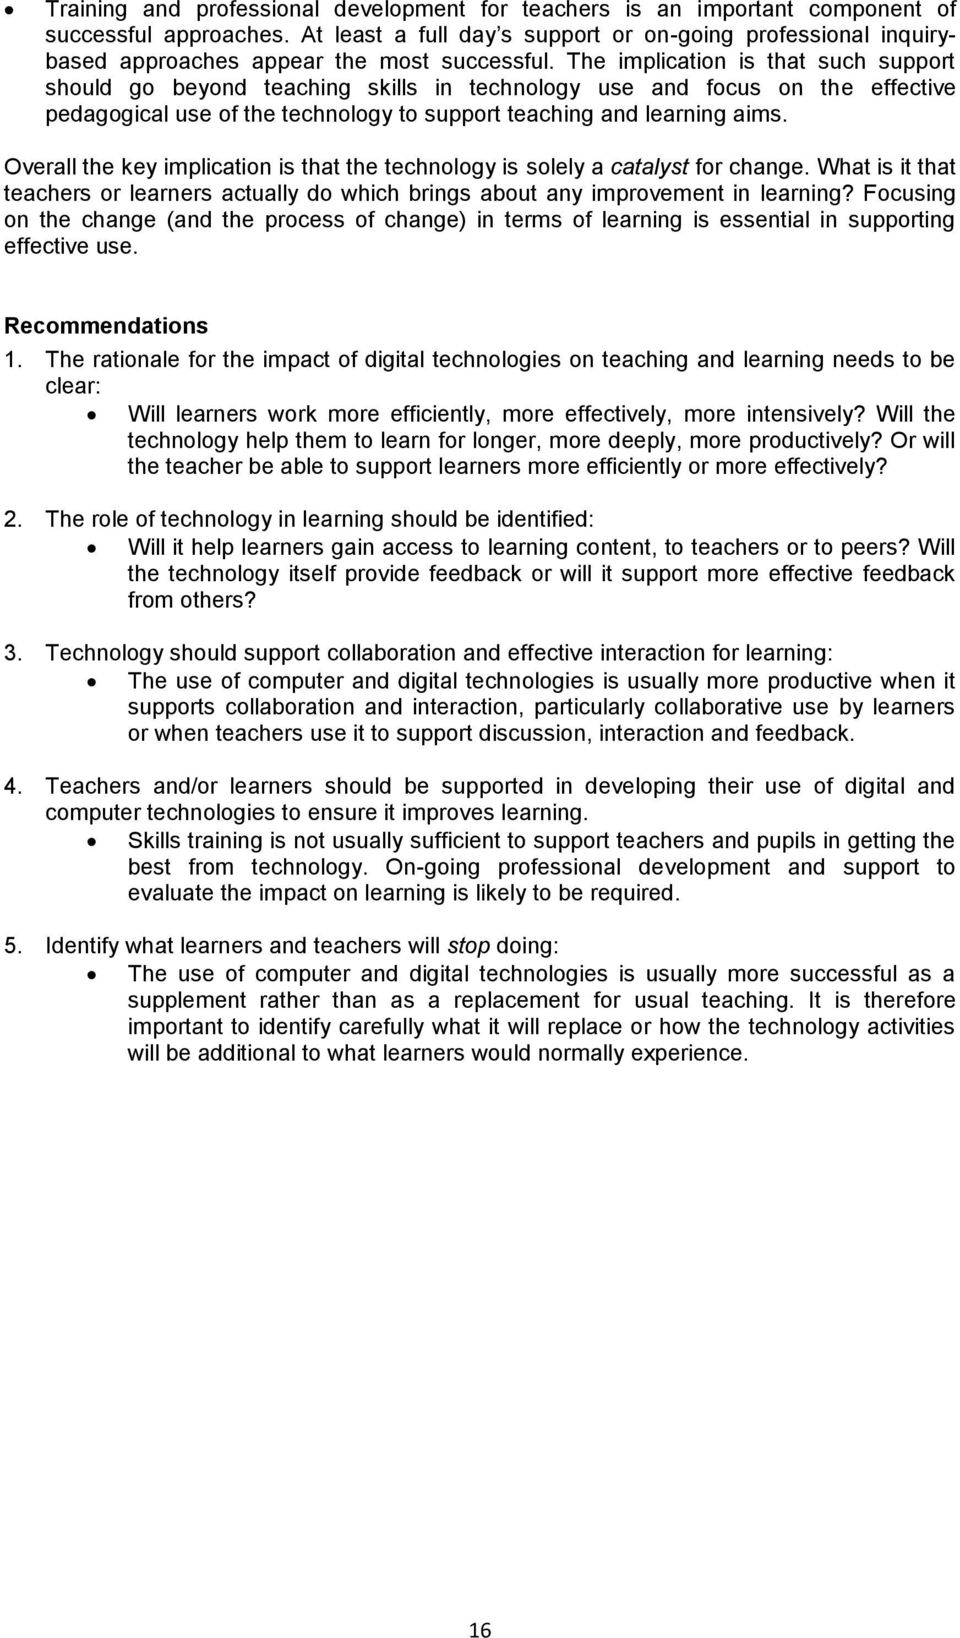 The implication is that such support should go beyond teaching skills in technology use and focus on the effective pedagogical use of the technology to support teaching and learning aims.